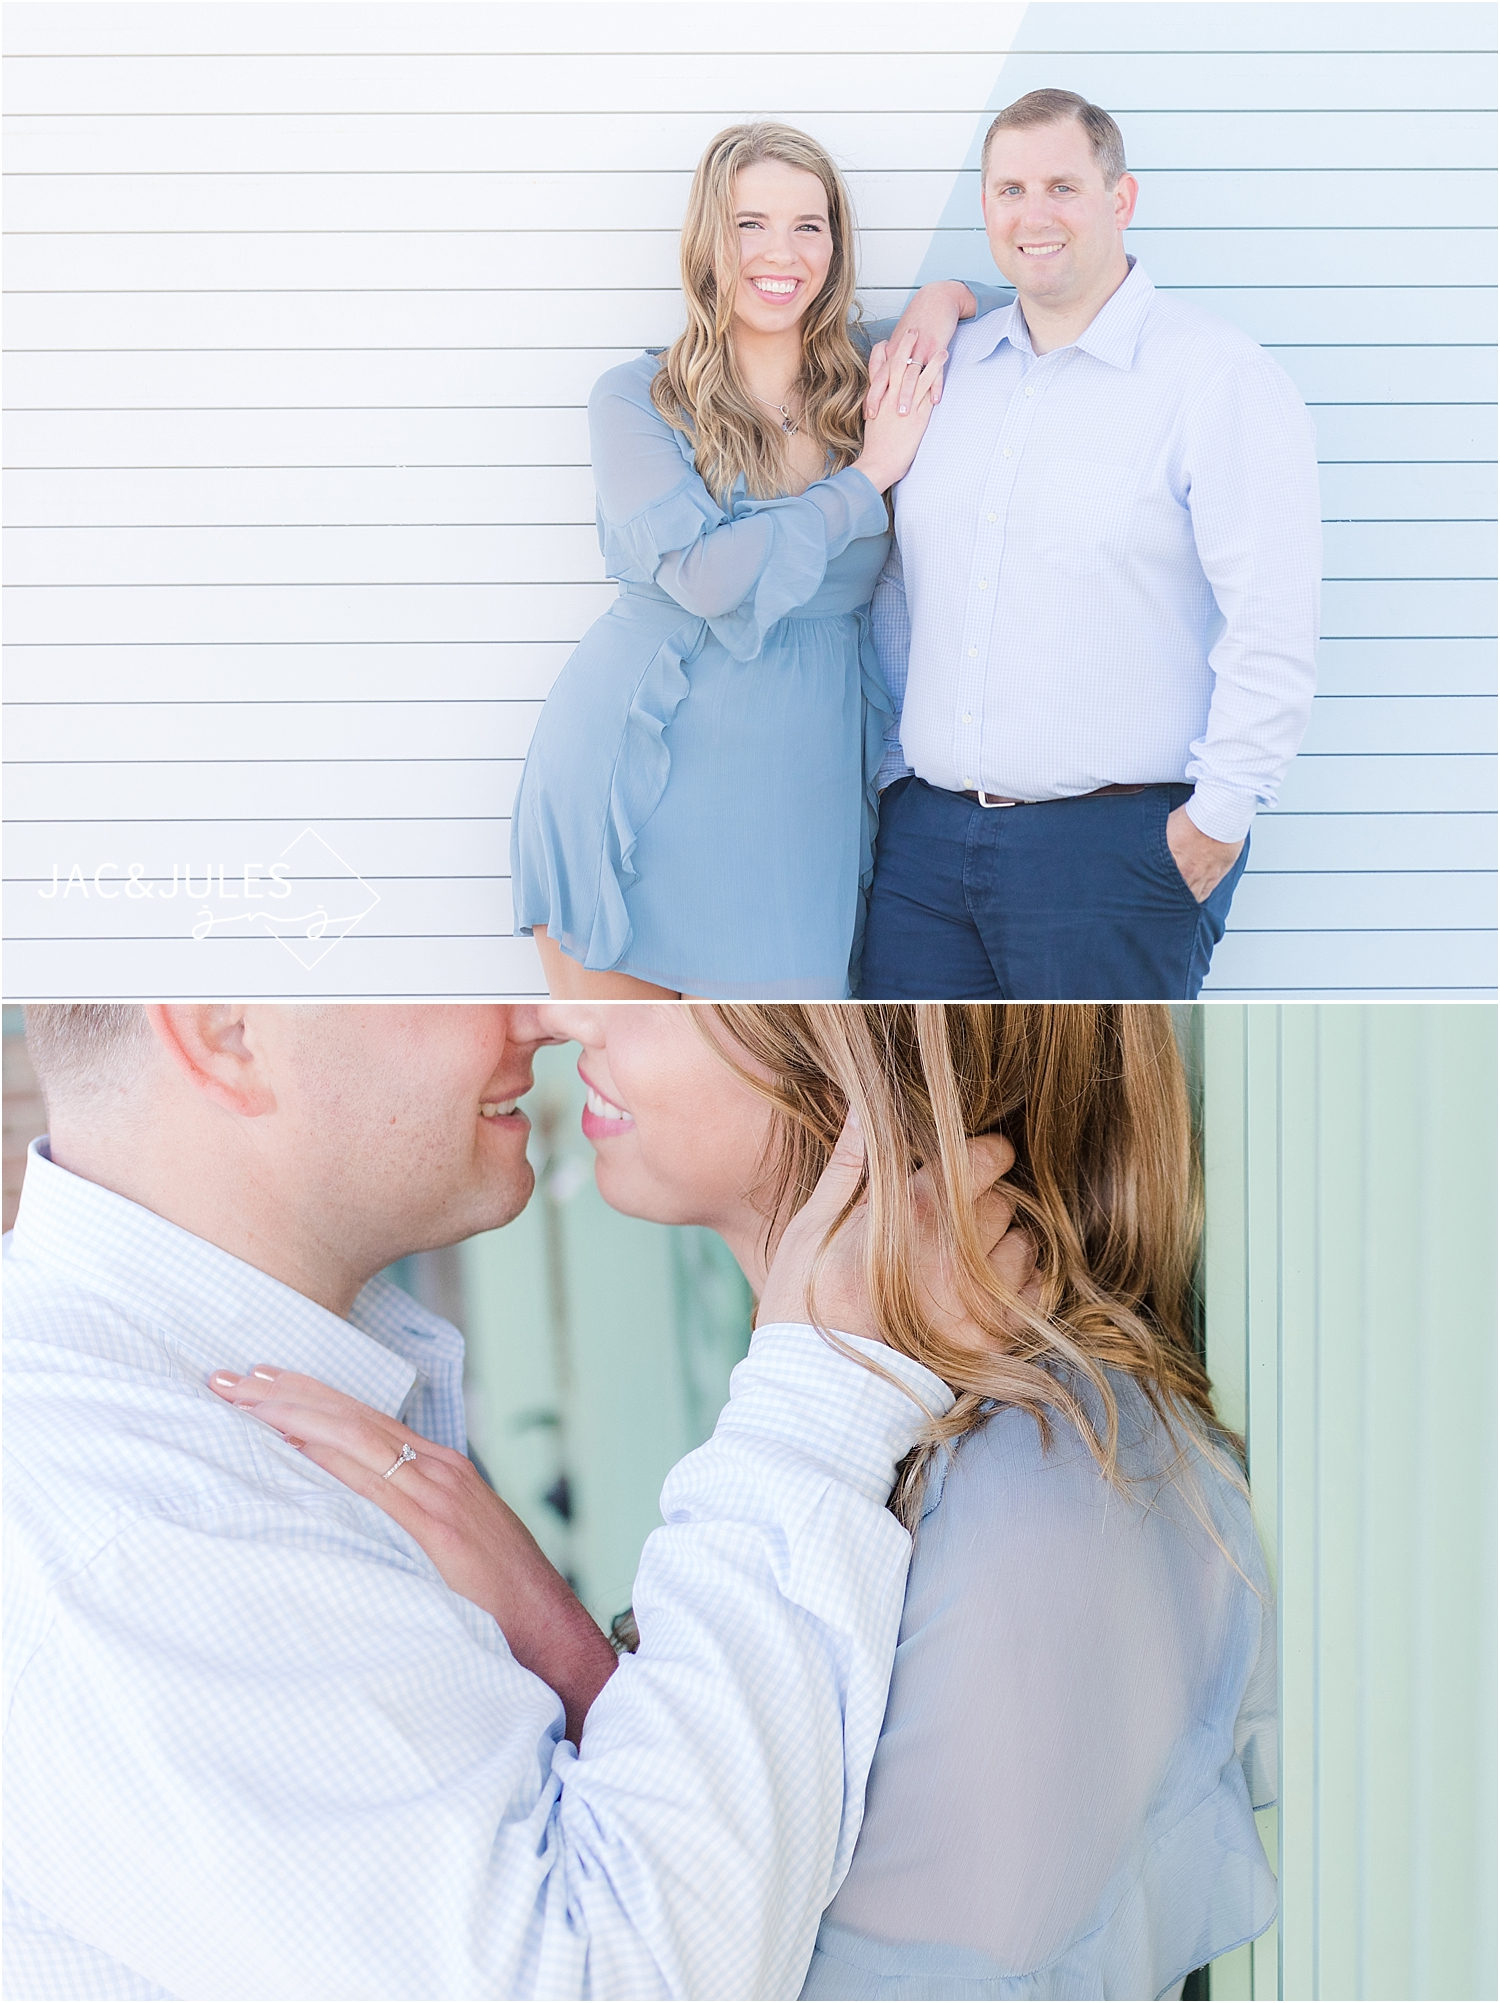 asbury-engagement-photo-what-to-wear.jpg